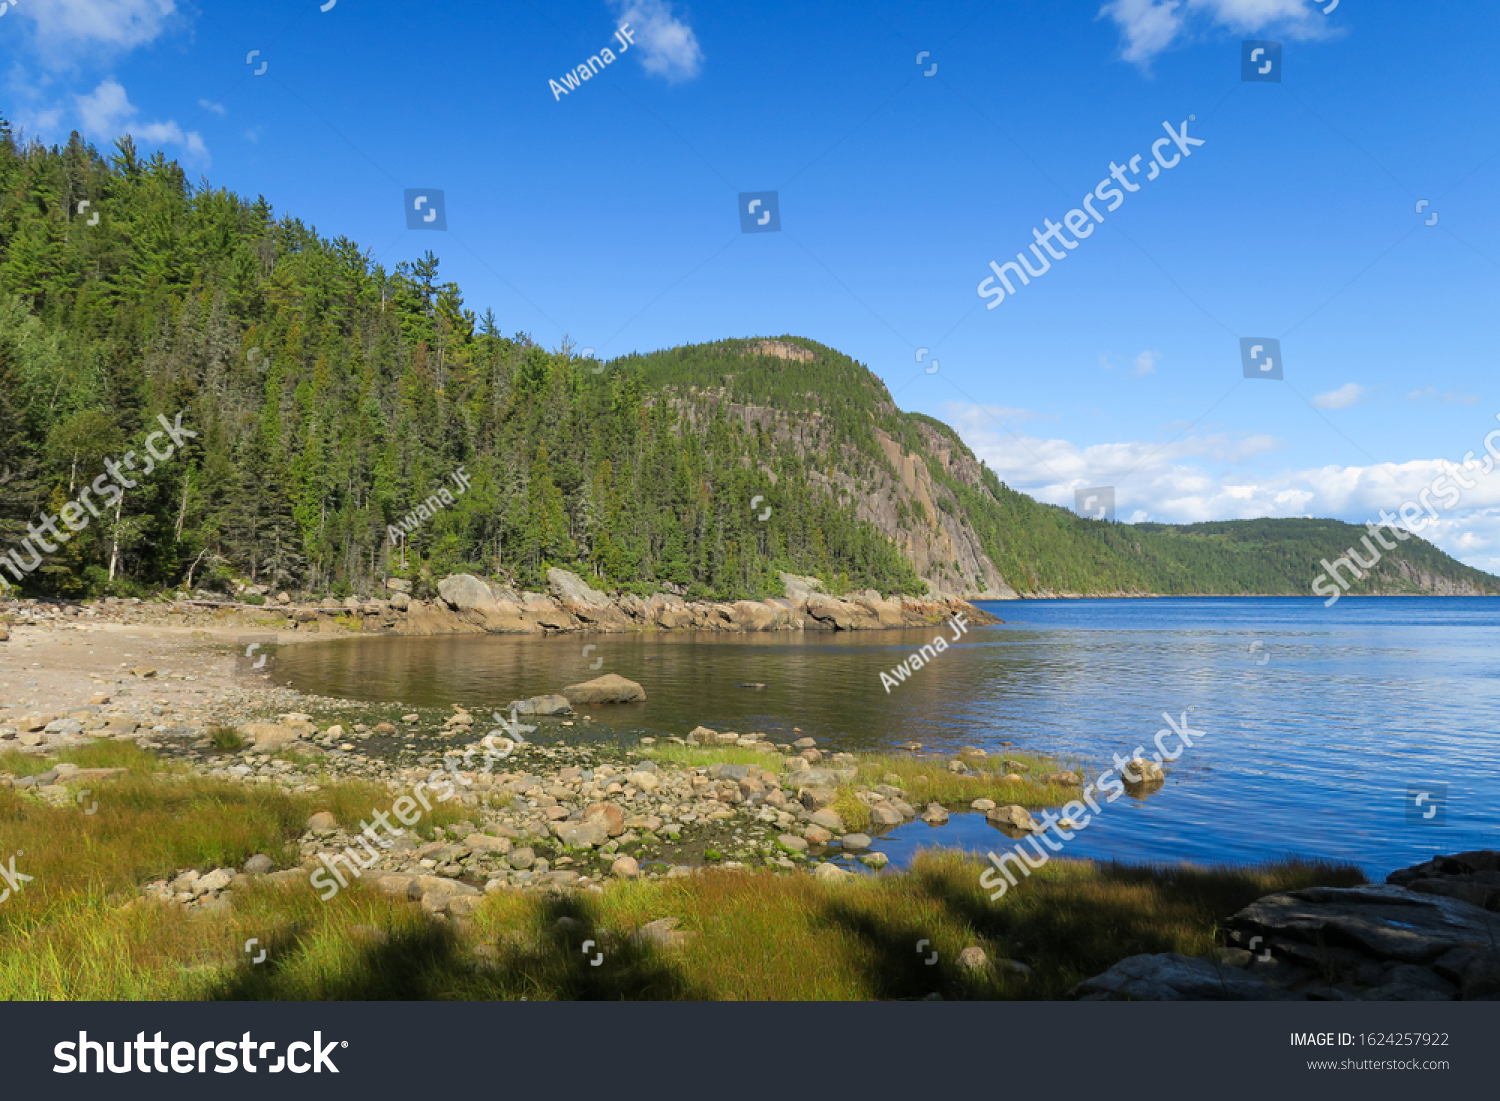 Landscape of the shore facing the Saguenay river